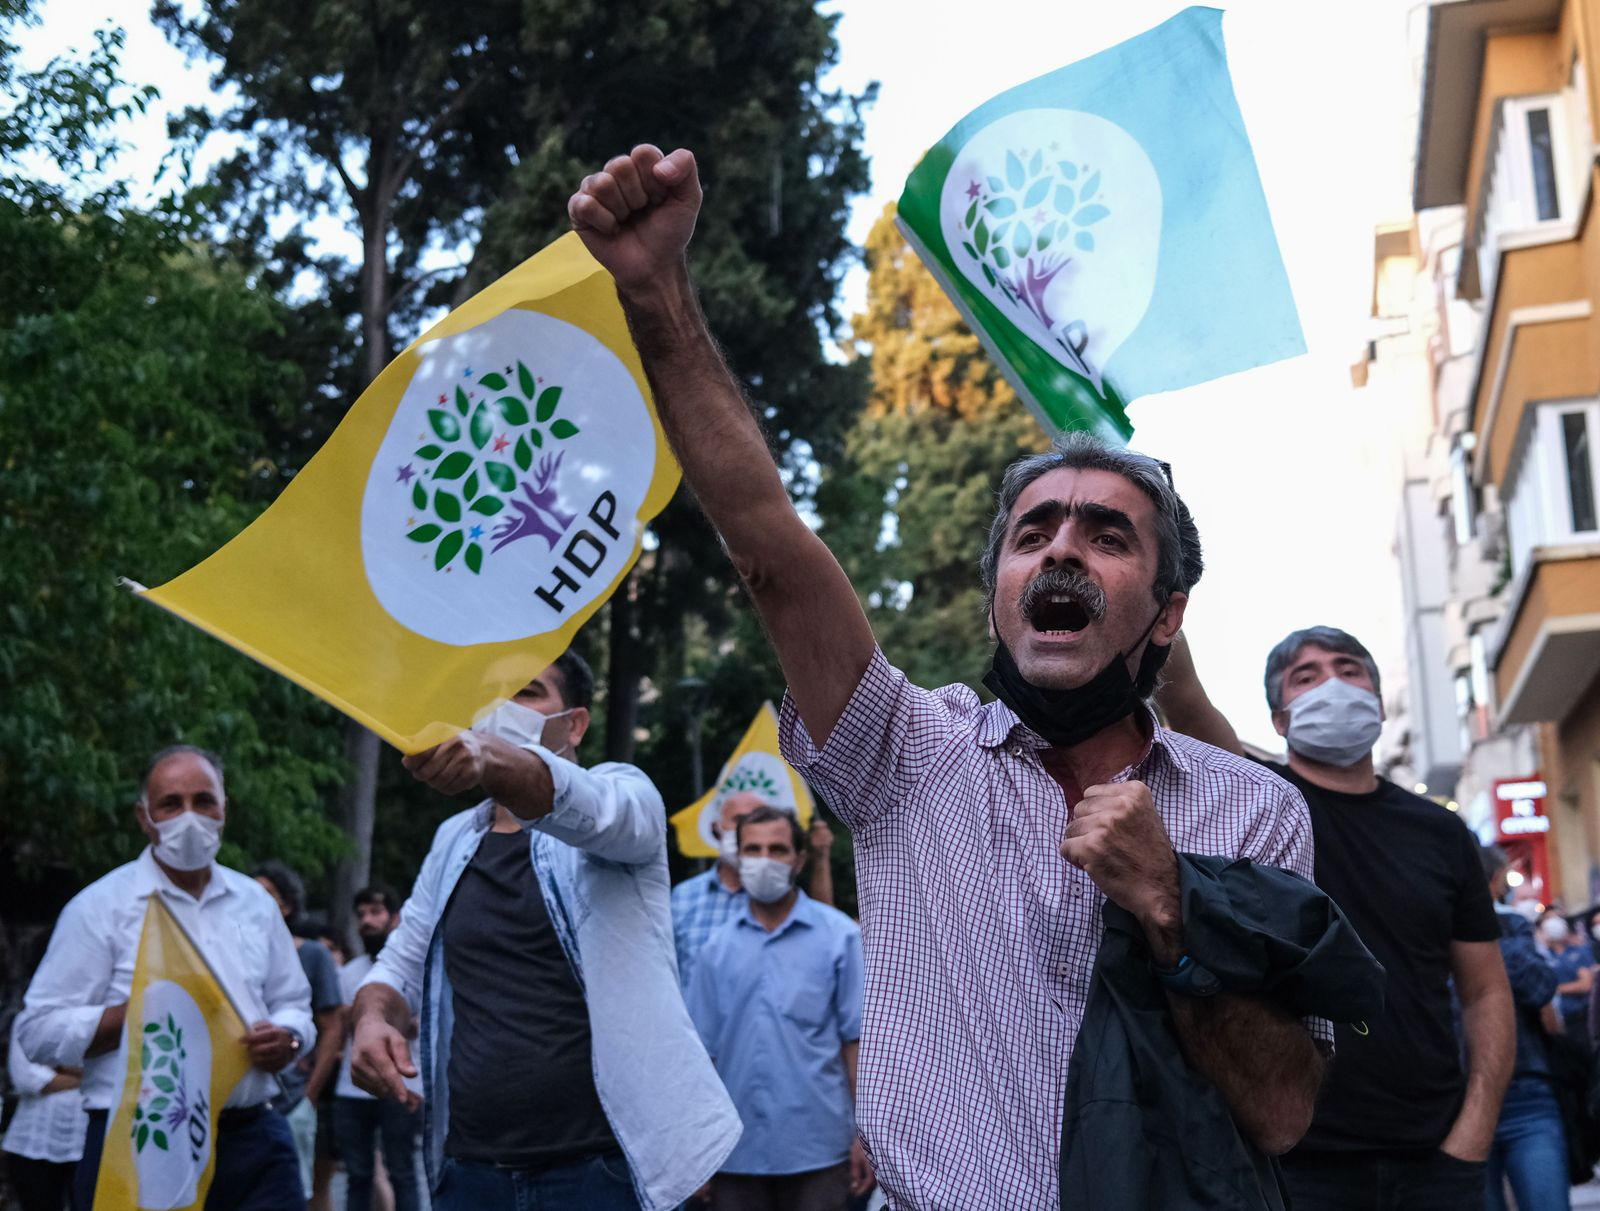 Pro-Kurdish party Peoples' Democratic Party (HDP) protest against government, Istanbul, Turkey - 25 Sep 2020